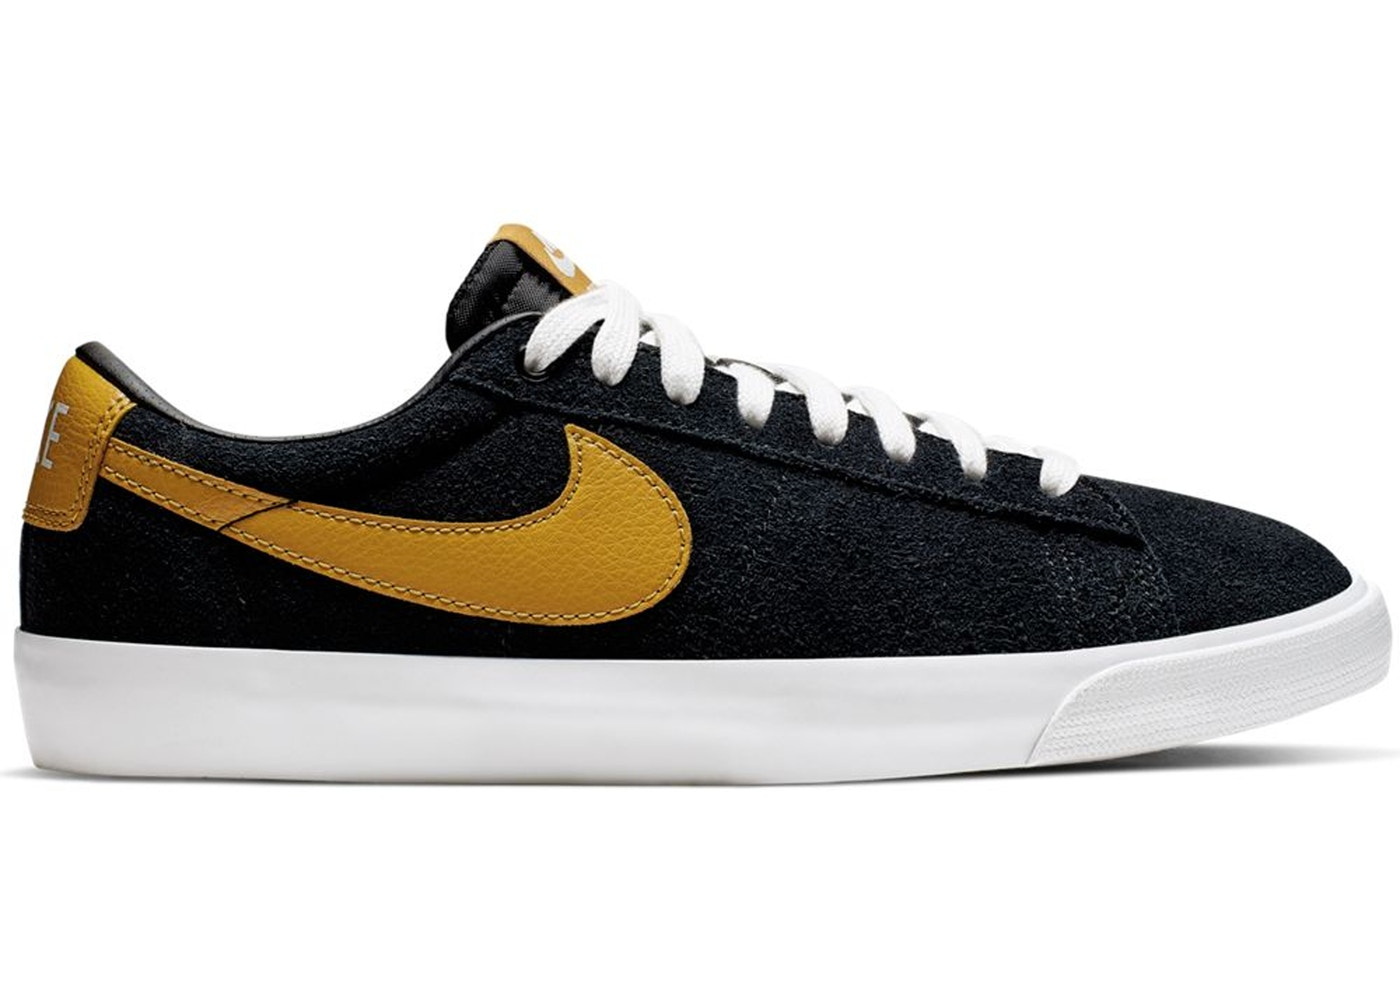 premium selection bb21a f192f Nike SB Blazer Low GT Black Wheat White